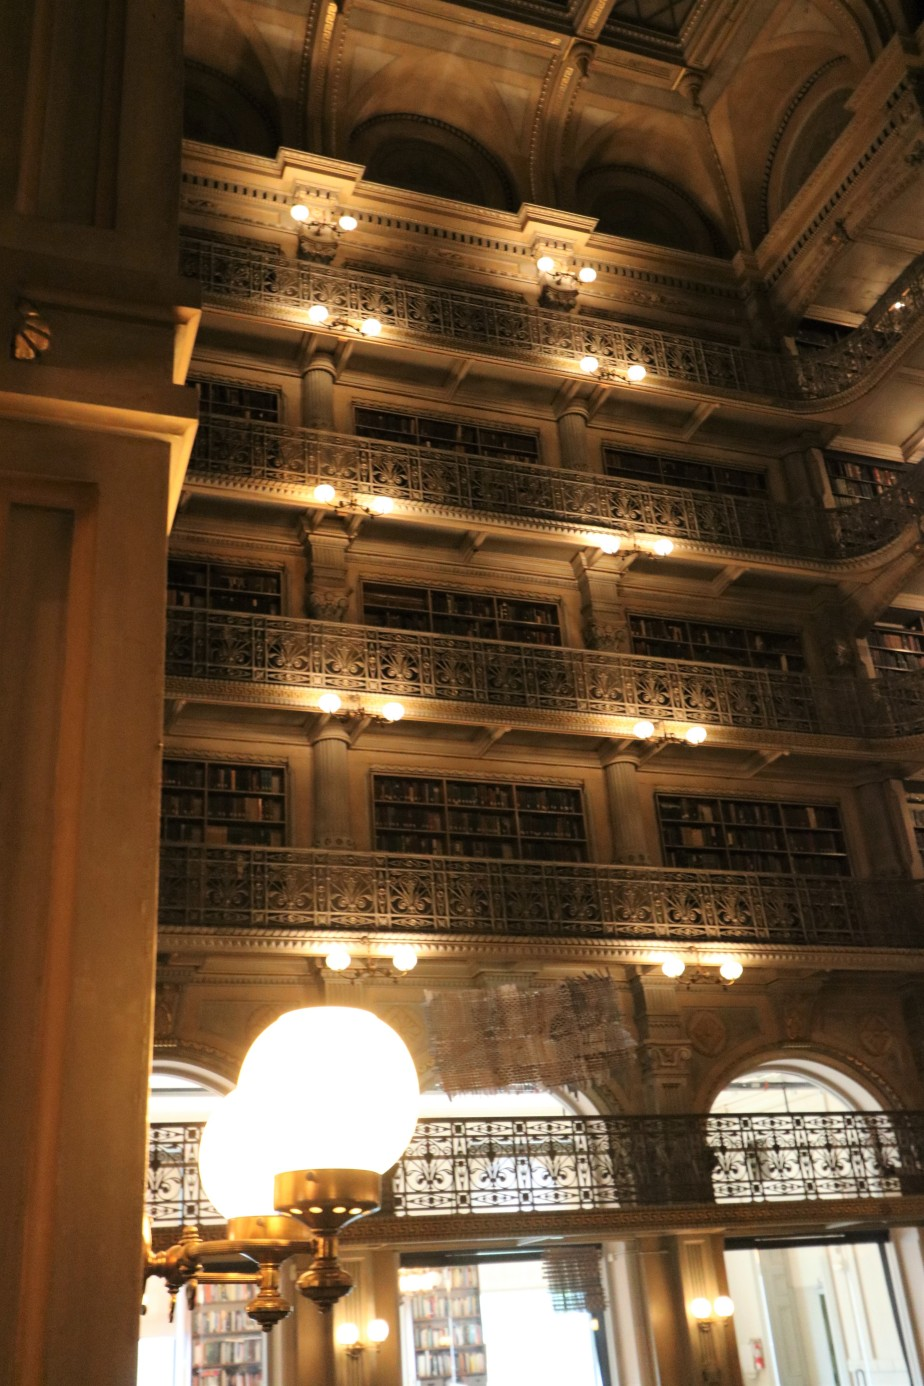 2018 05 04 19 Baltimore Peabody Library.jpg